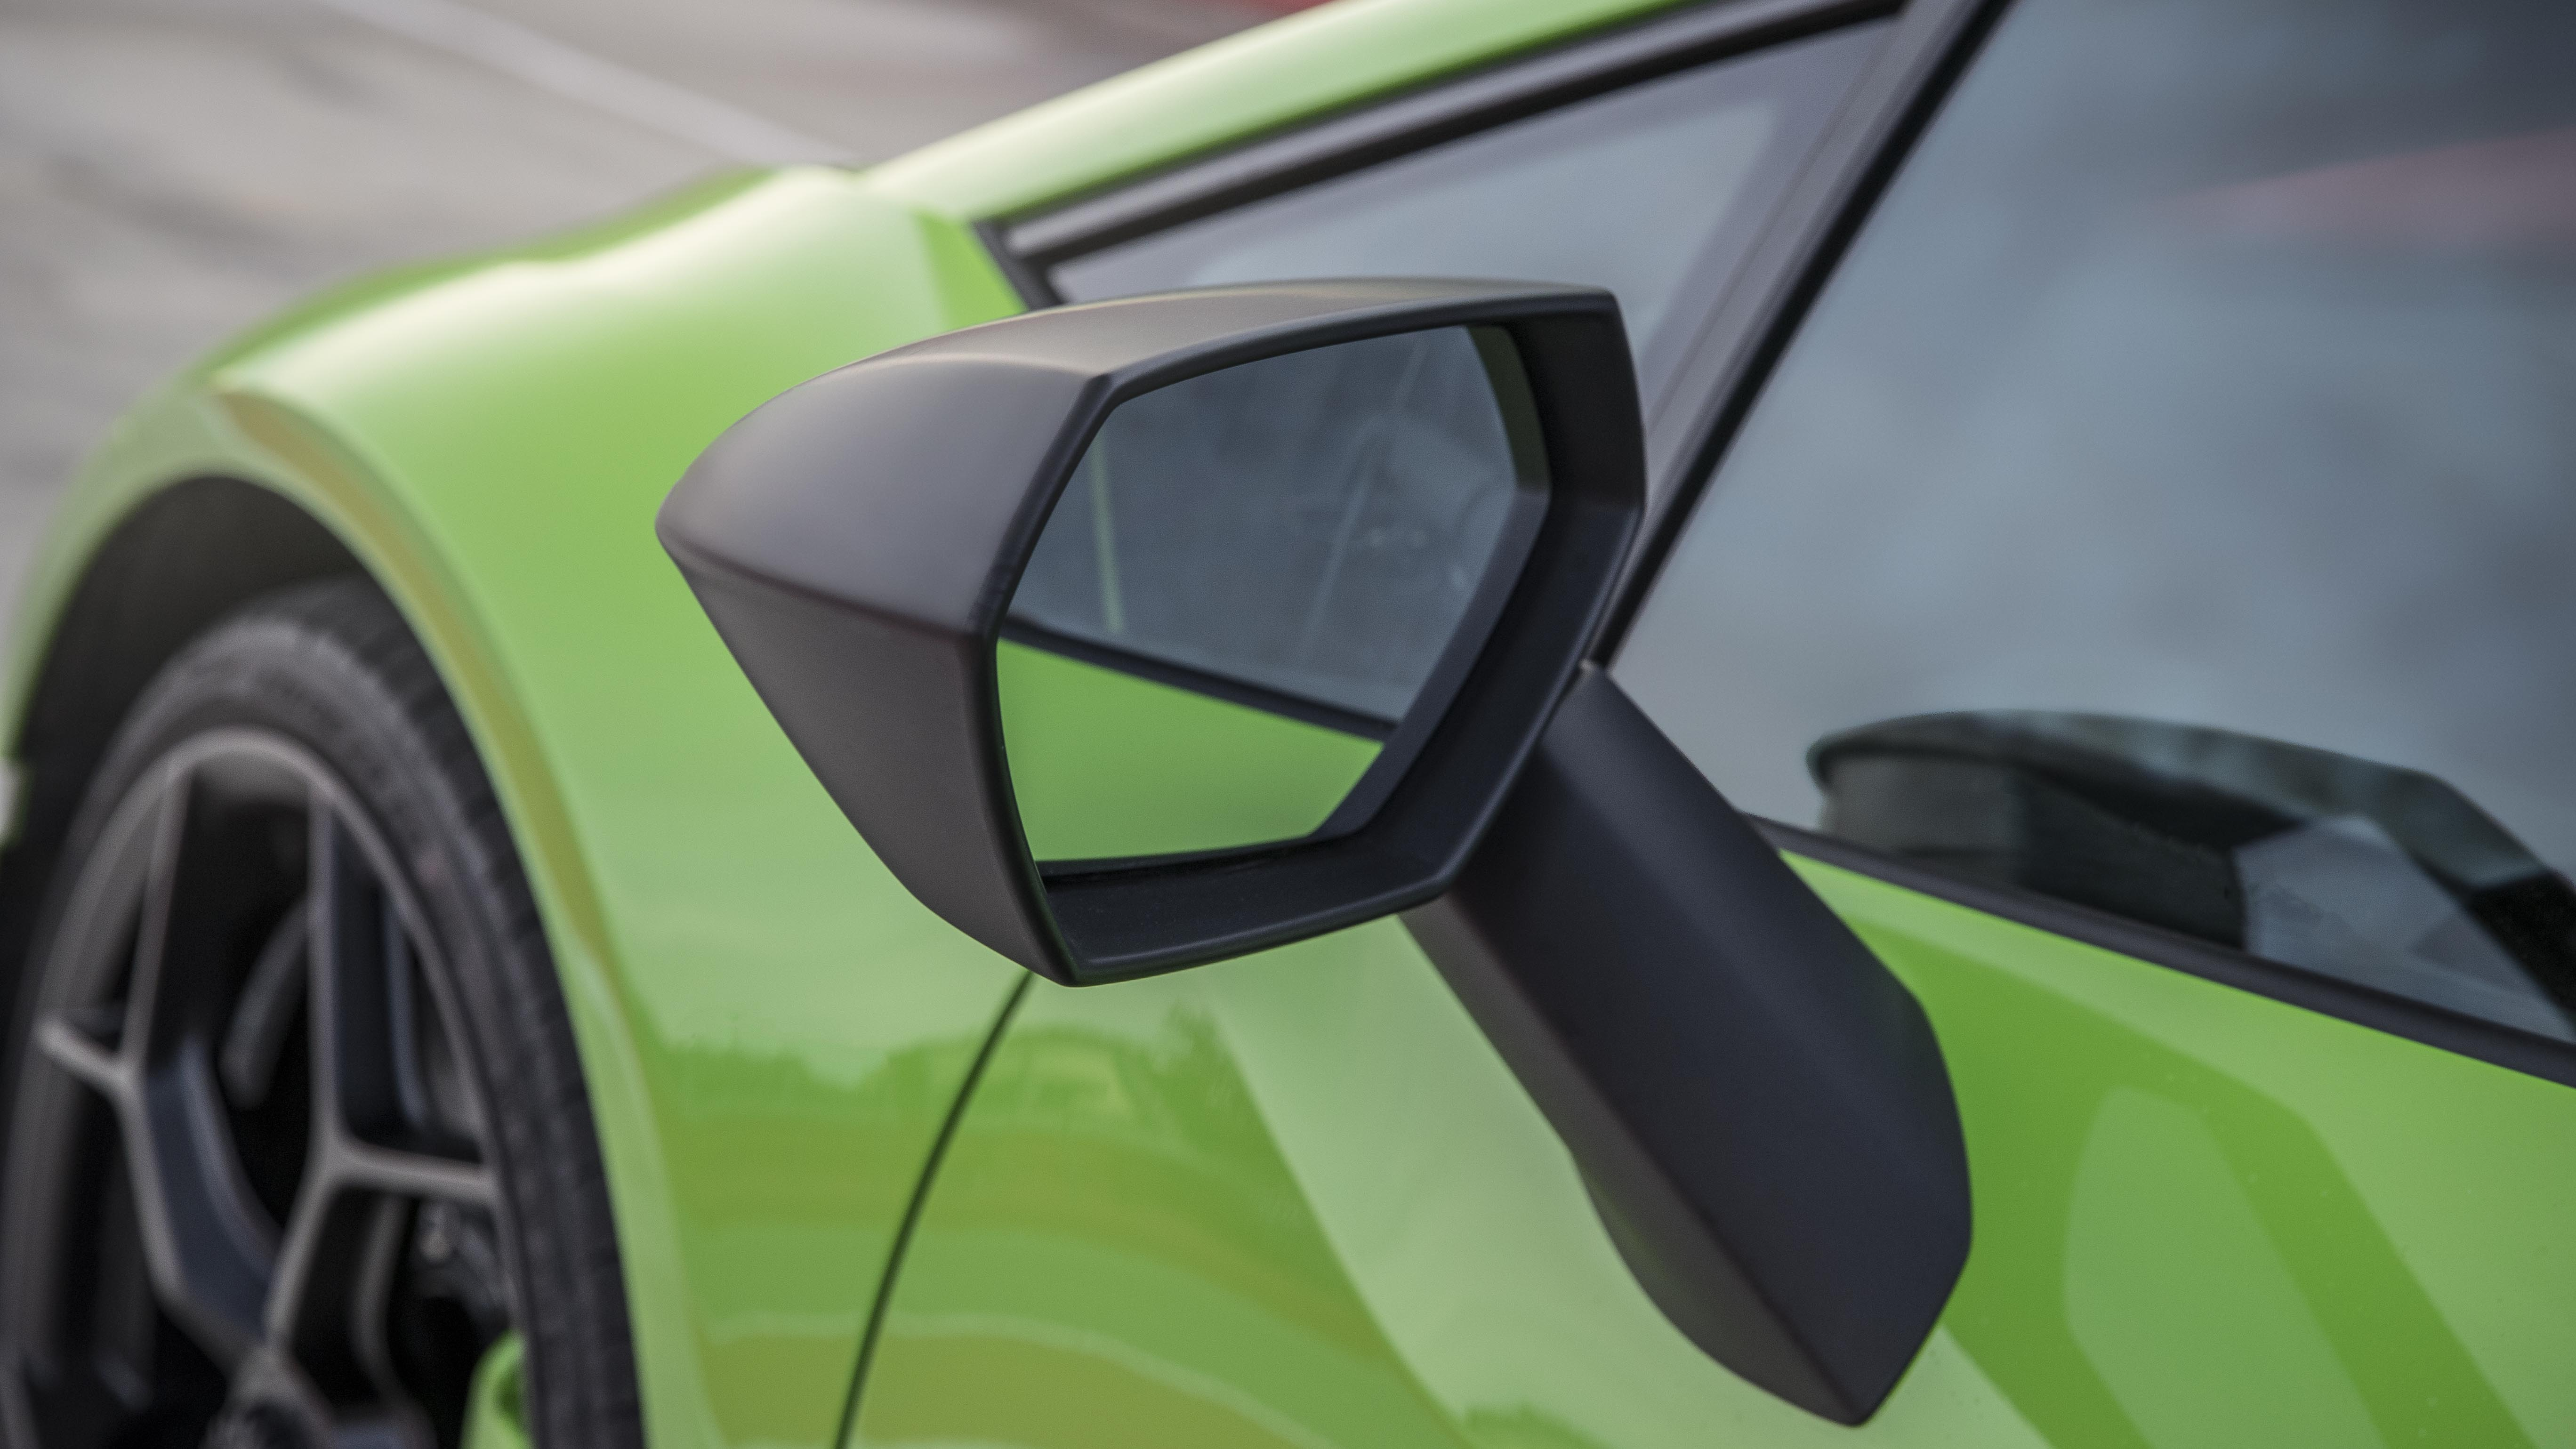 Lamborghini Huracan Performante wing mirror